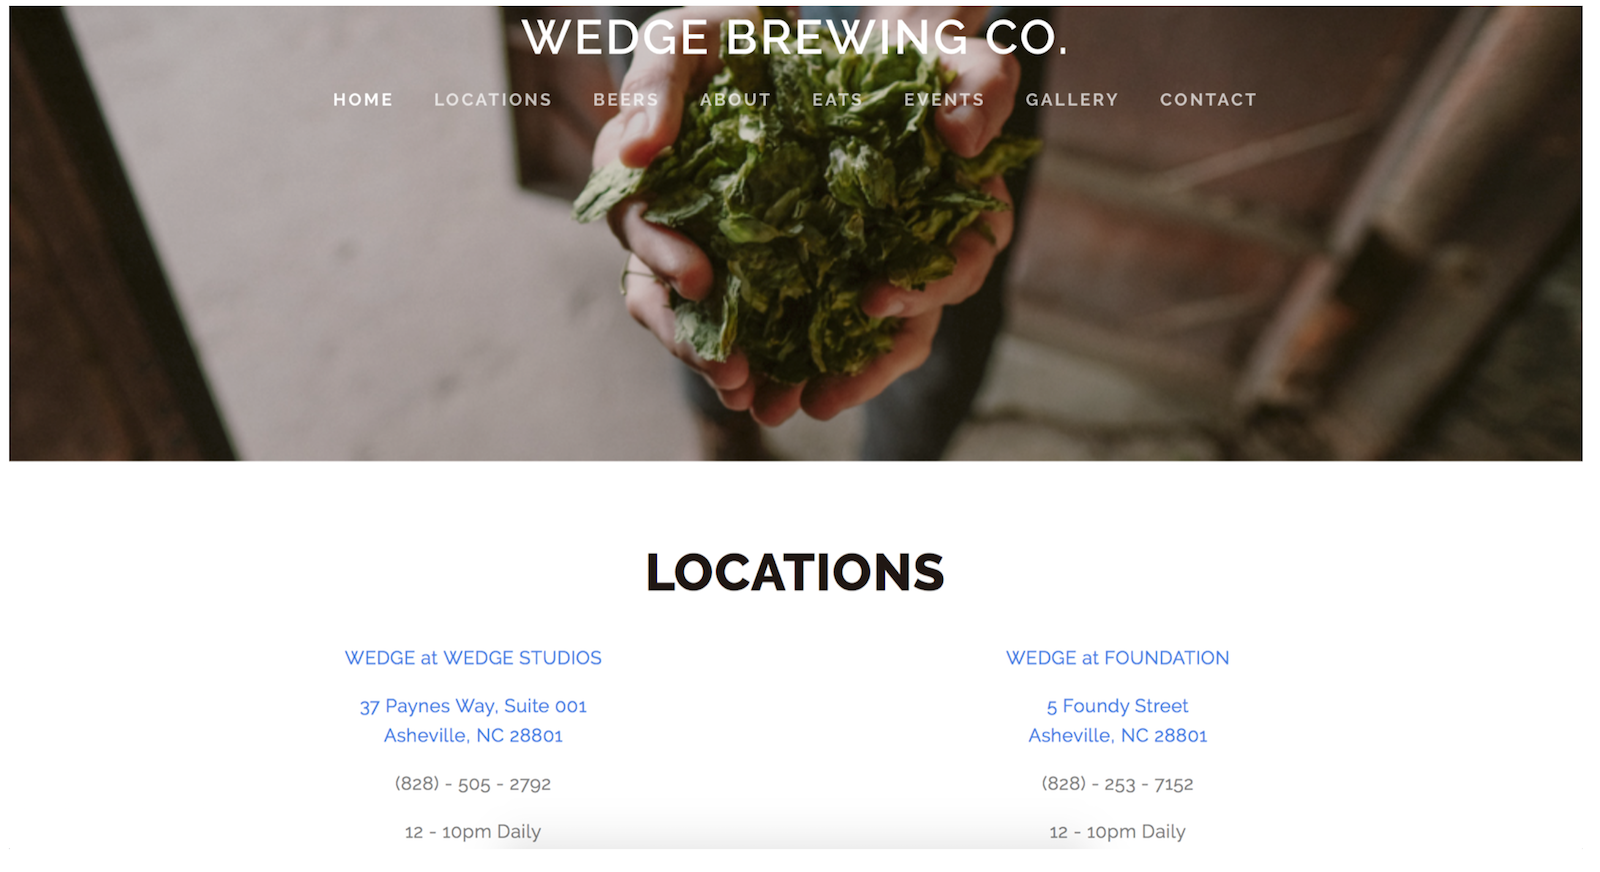 Wedge Brewing Co. | Authentic Asheville